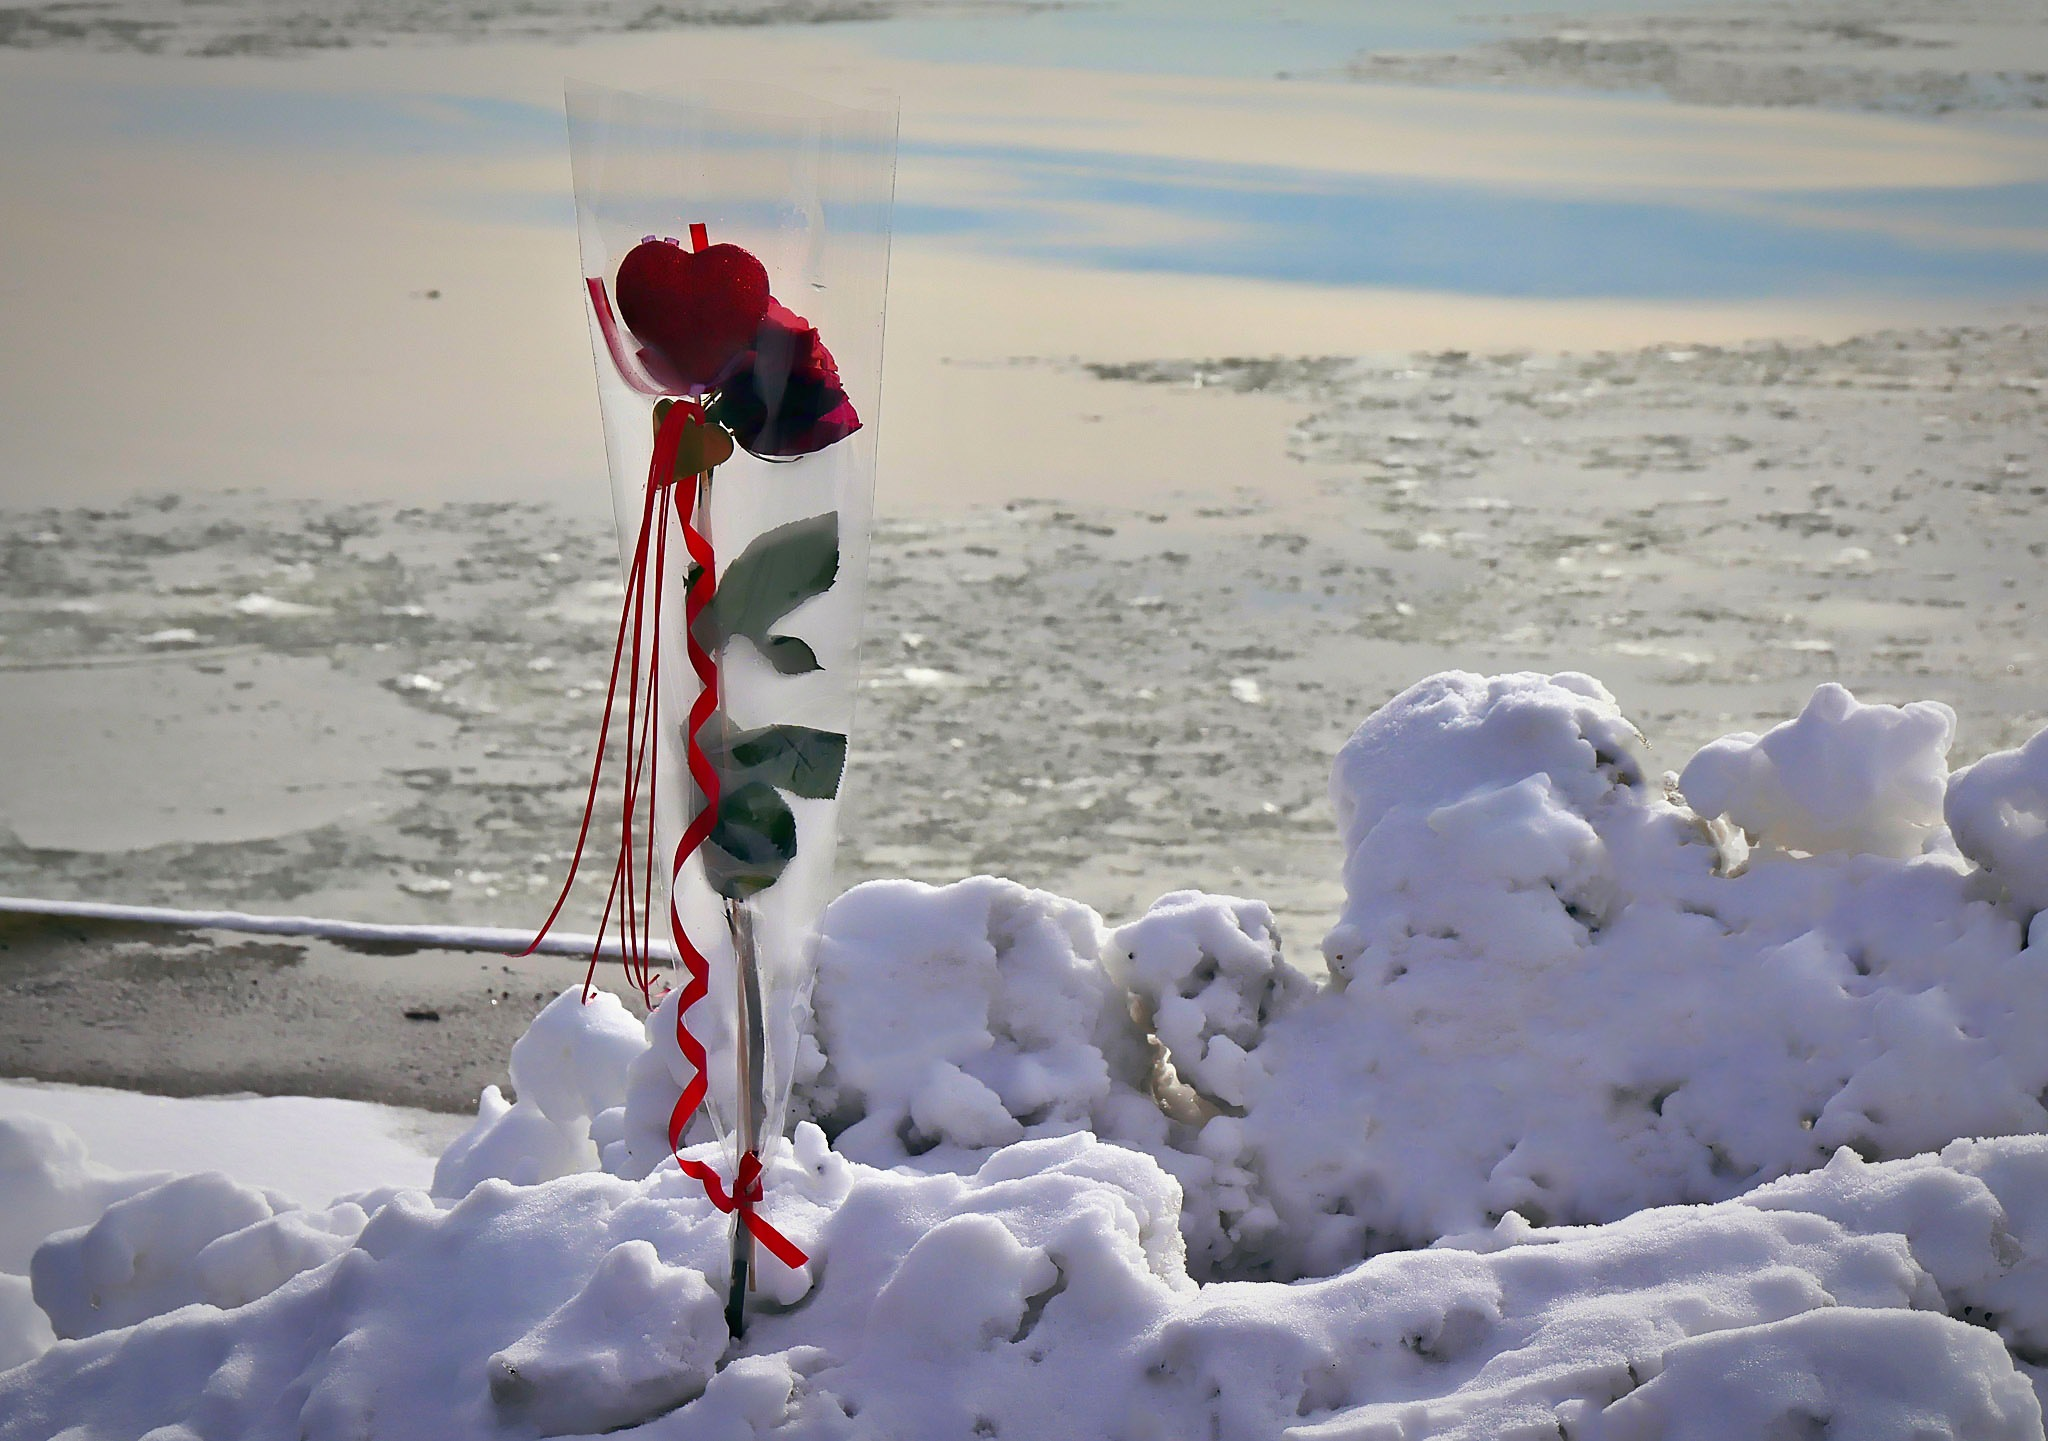 Rose in the snow by Peter F Hansen